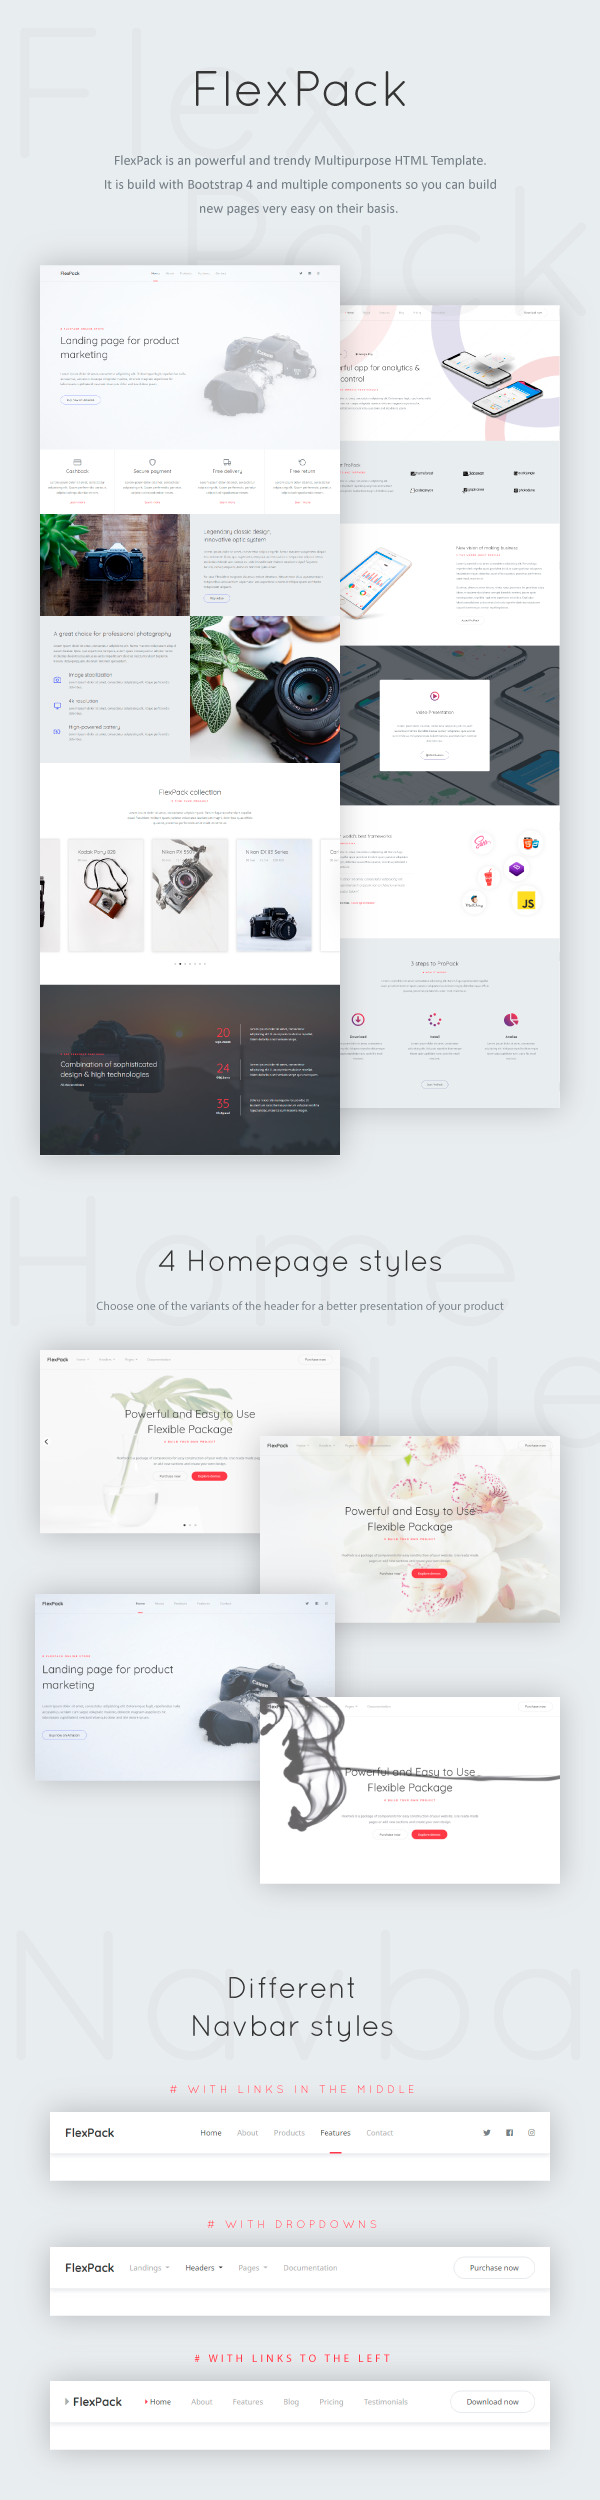 FlexPack - Multipurpose HTML Landing Pages Package - 1